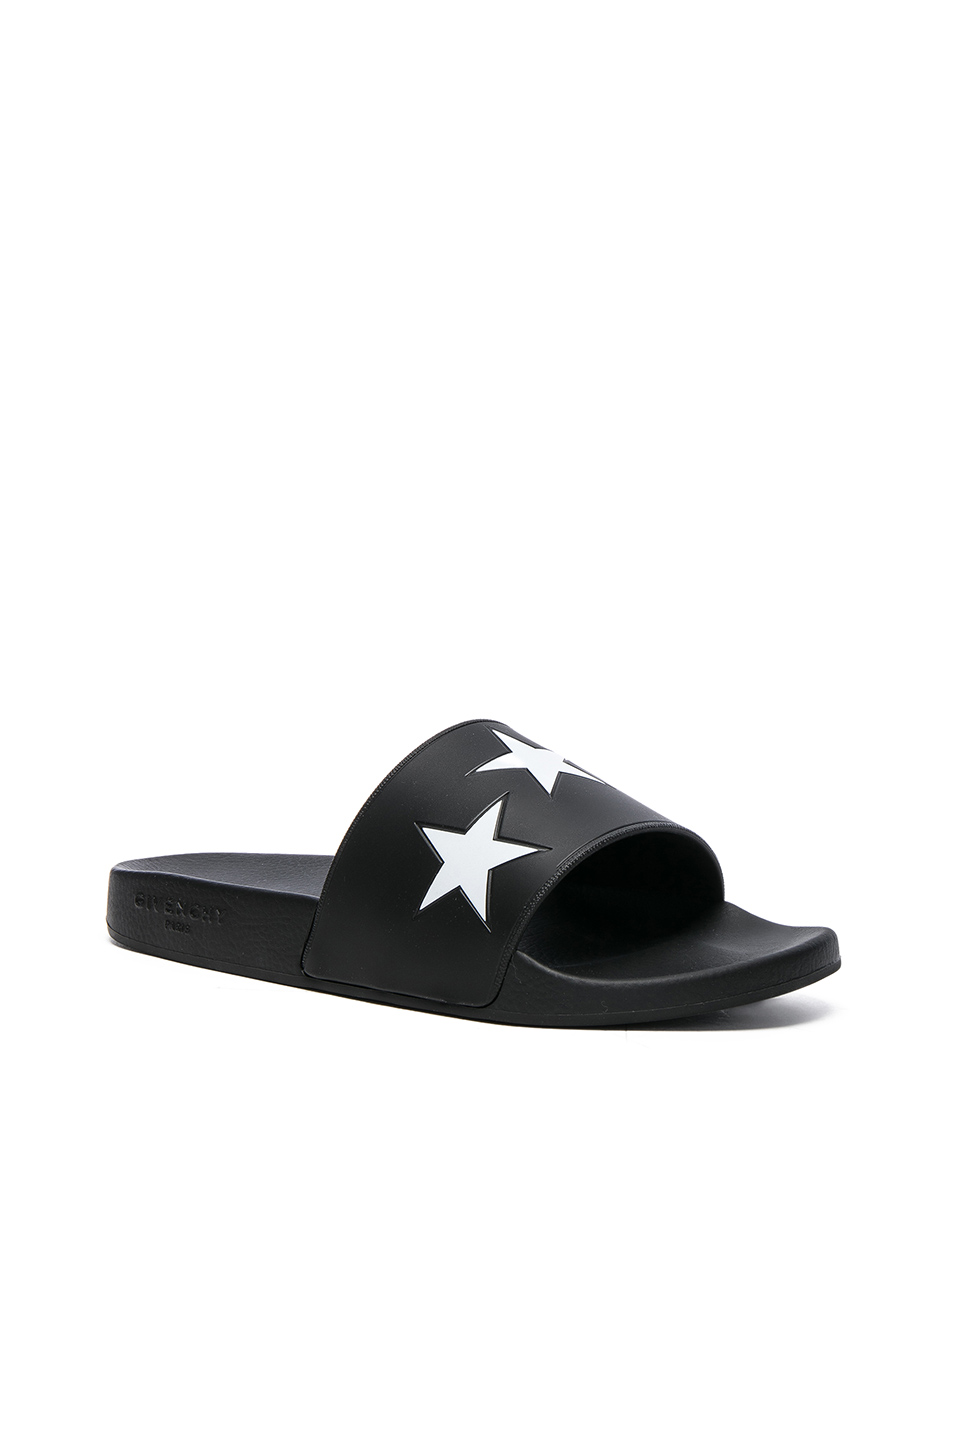 Givenchy Slide Sandals in Black